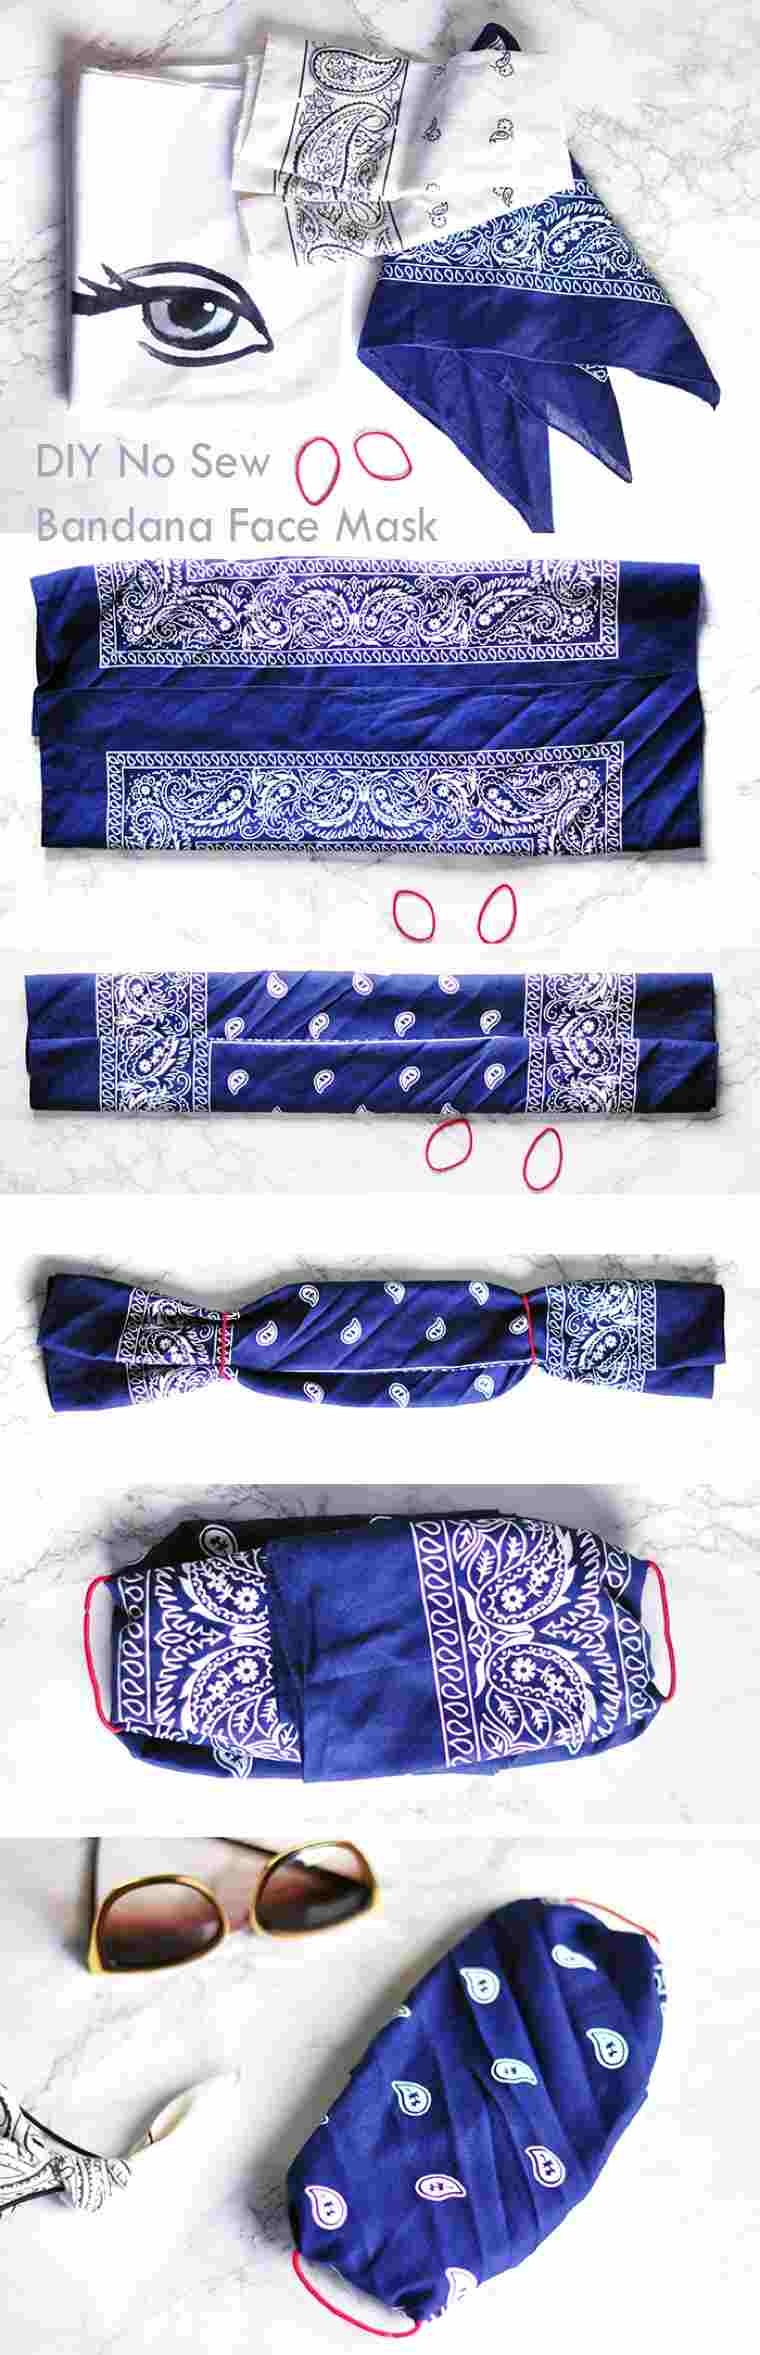 create masks to protect yourself in bandana